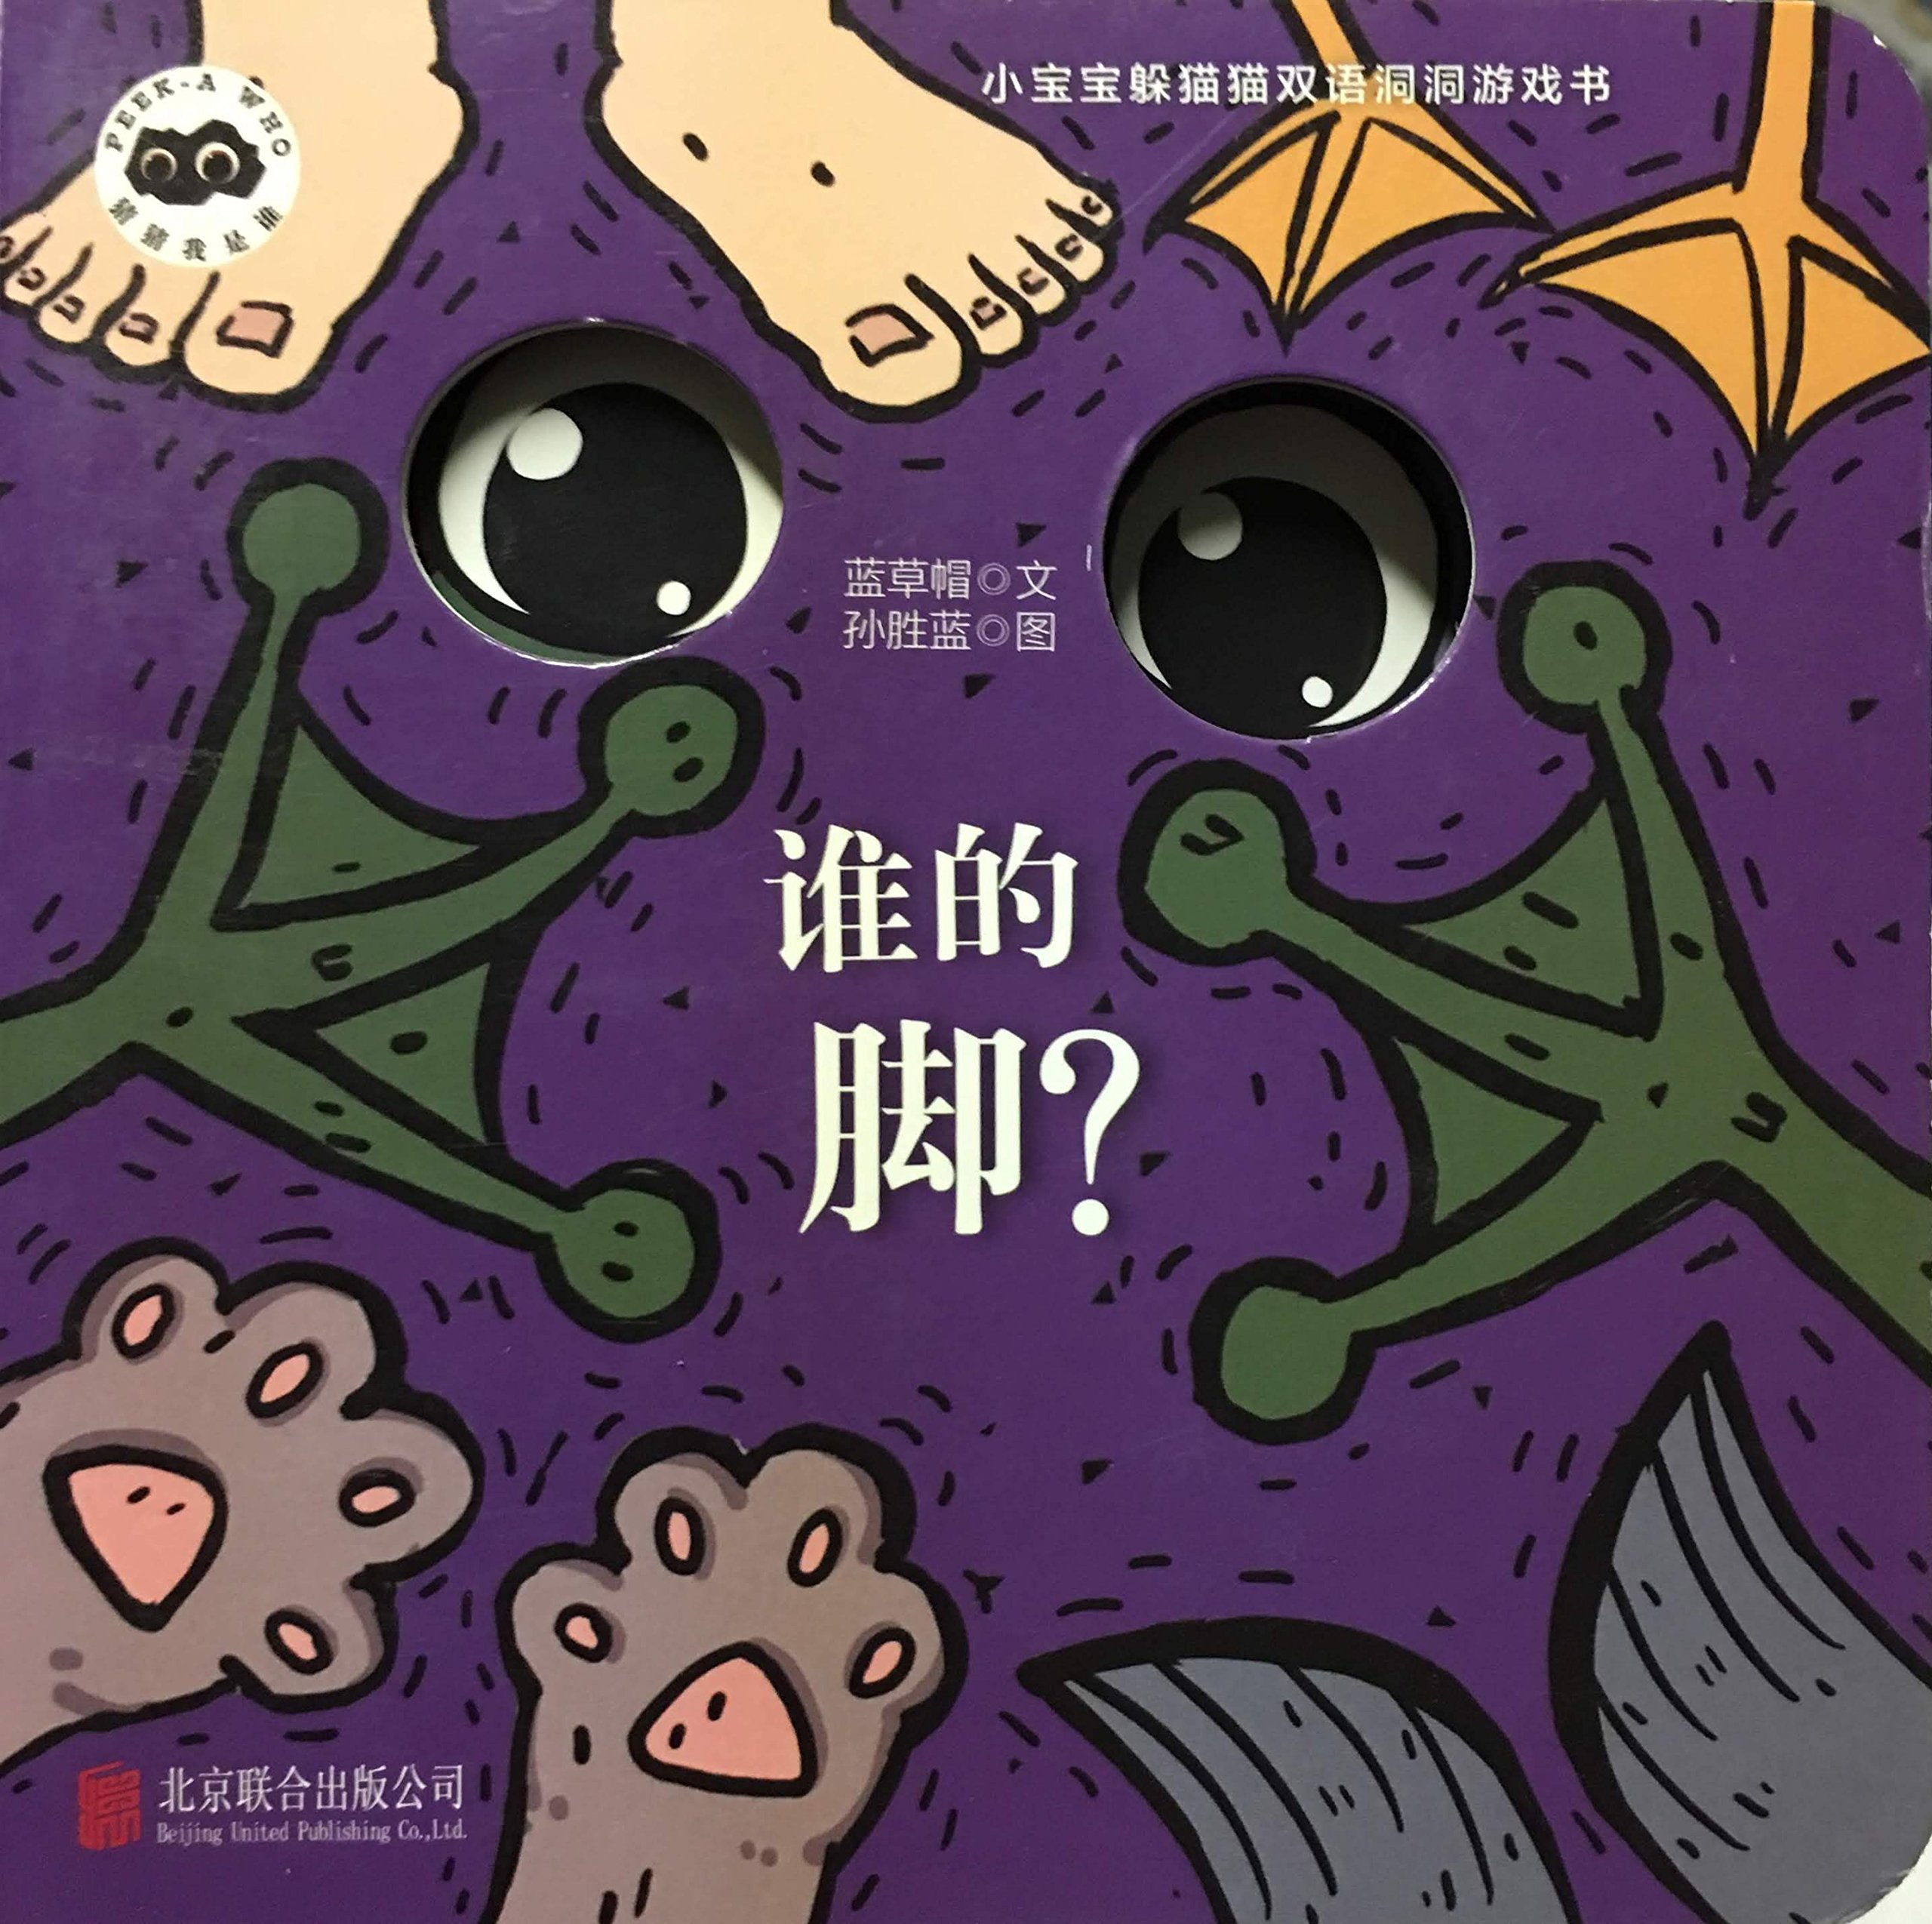 Read Online Whose feet are these? (Chinese English Ed) Board Book 谁的脚? PDF